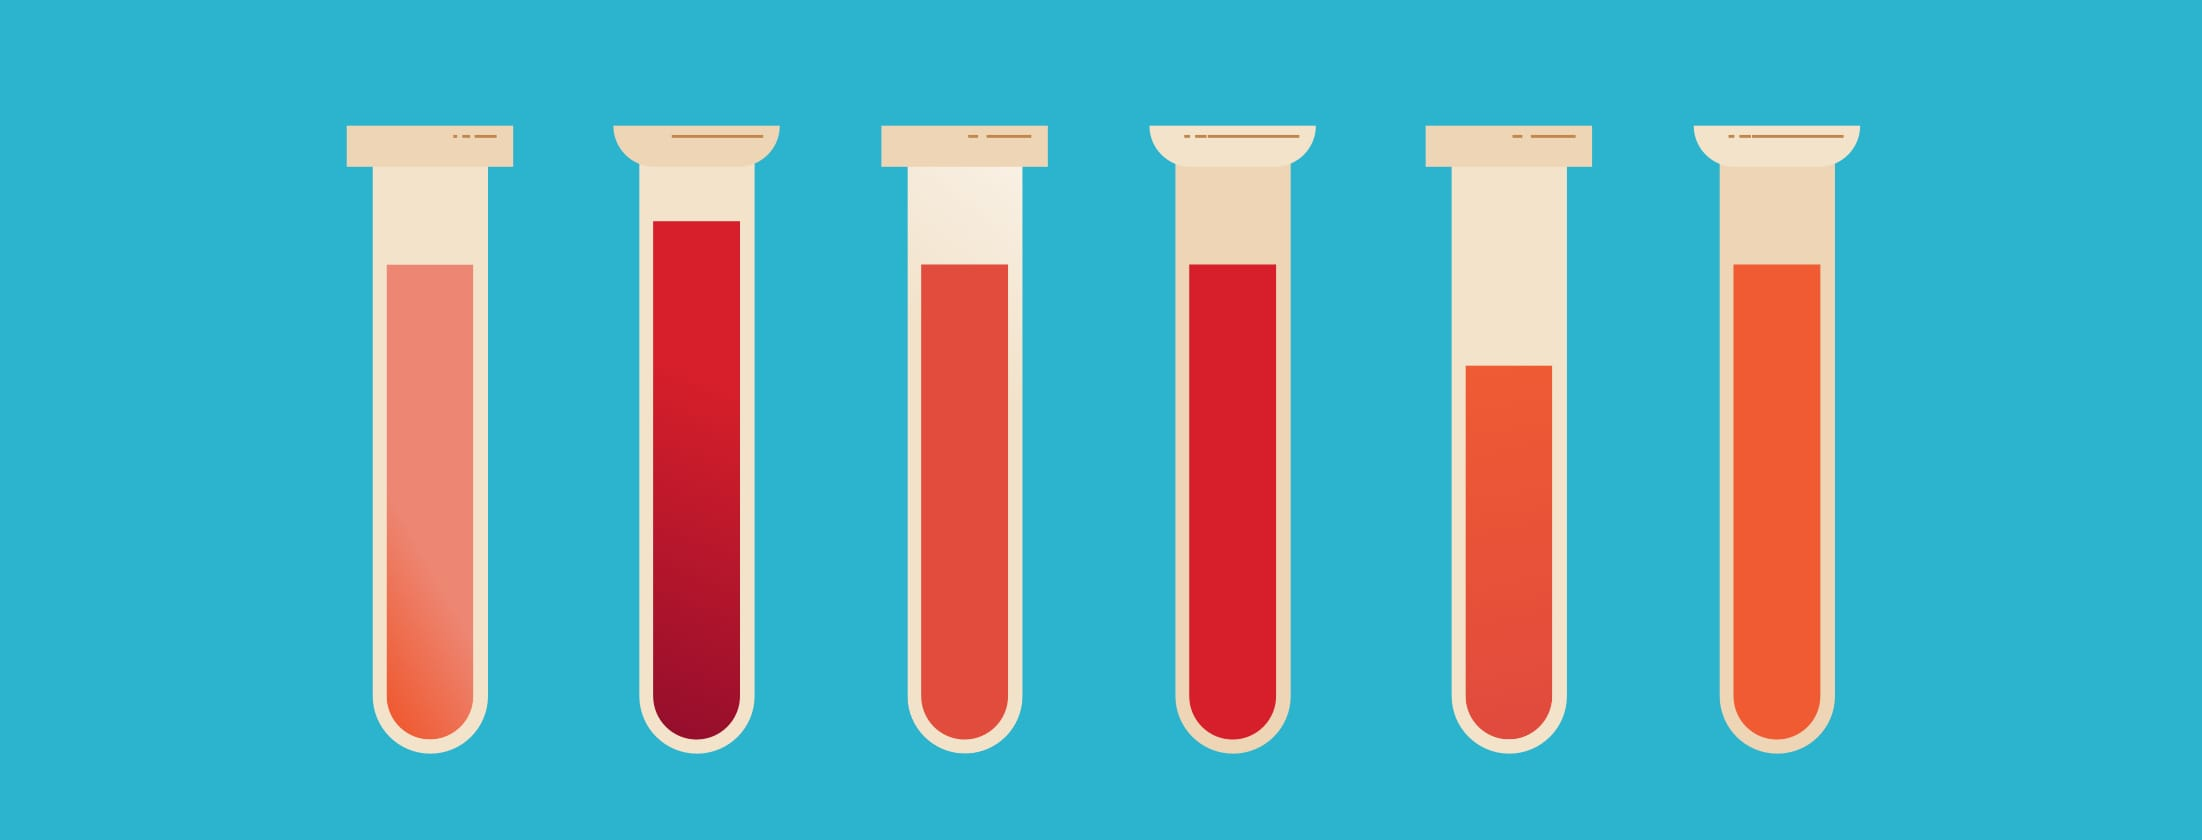 How Do Liquid Biopsies Work?